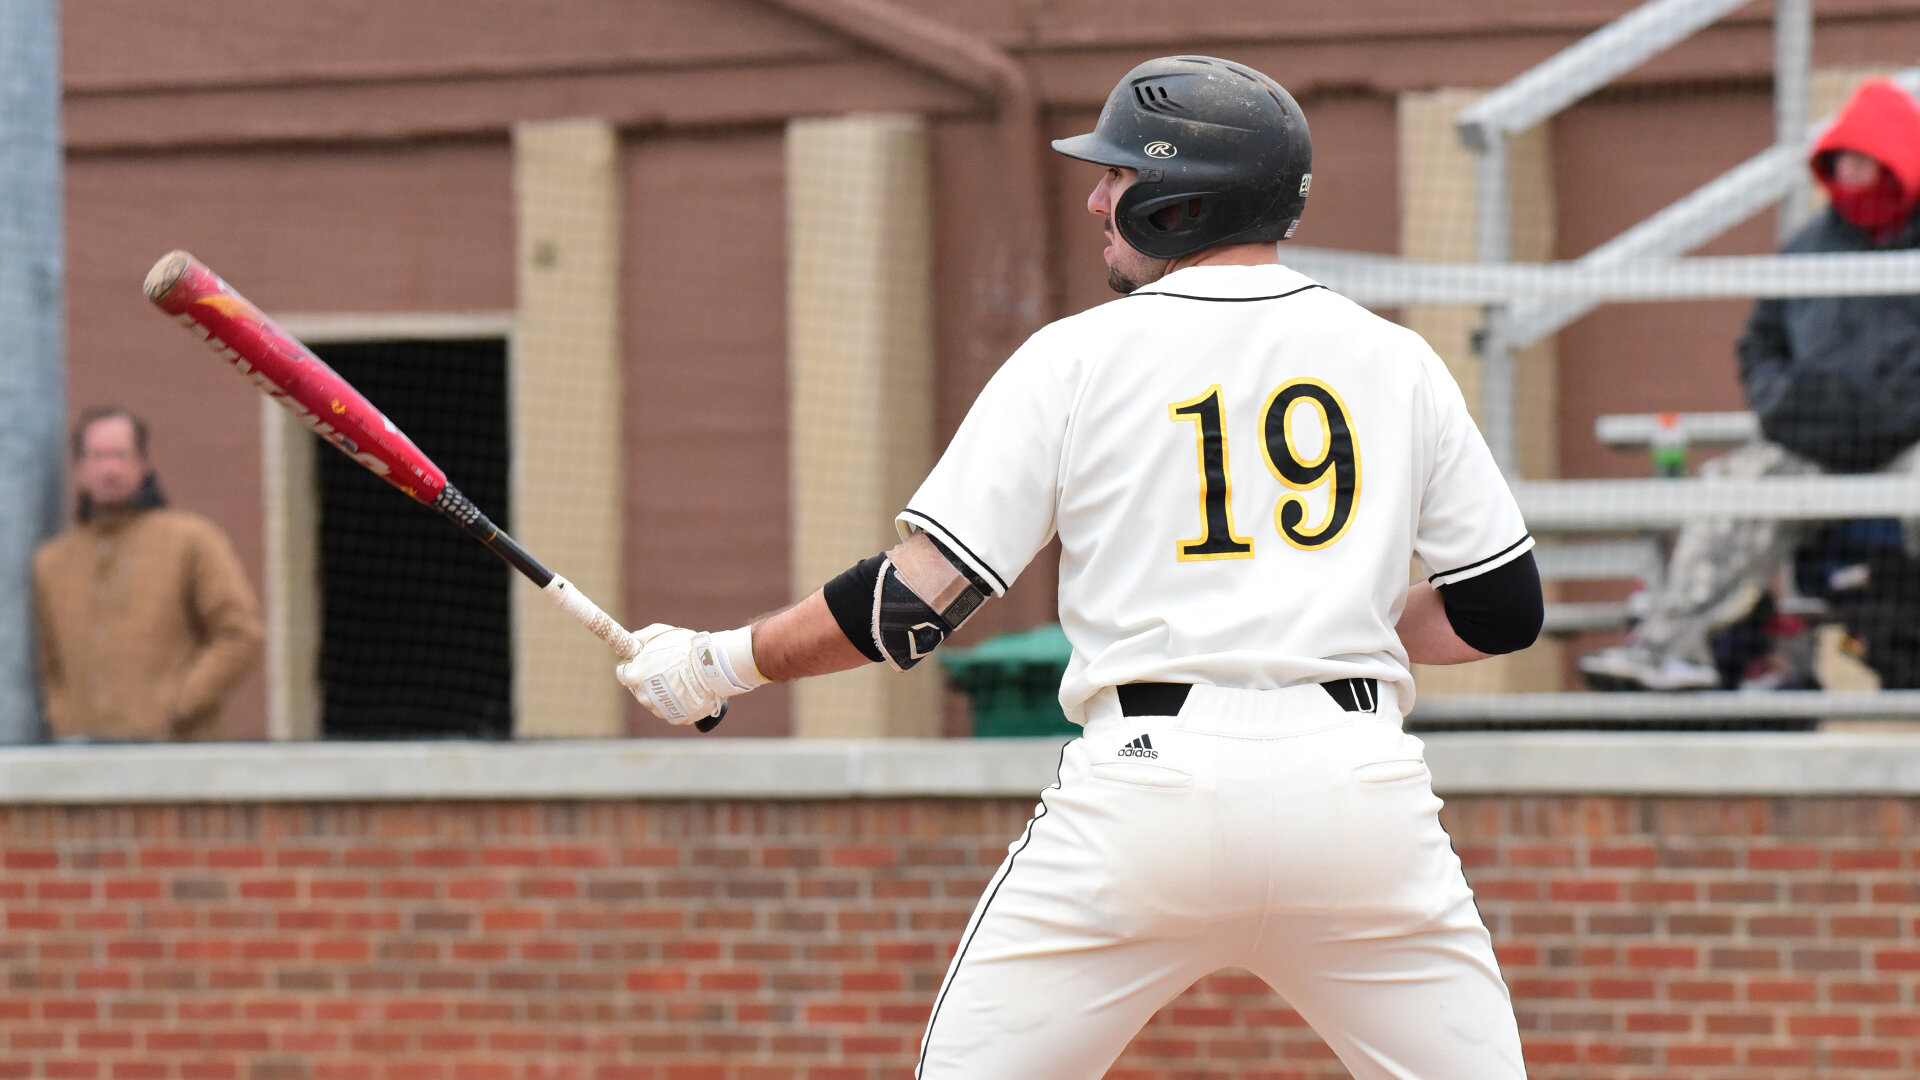 """BullettProof Prospects"""" Mason Falbo (Mississauga, Ont.) batted .261 for Centre Colonels."""